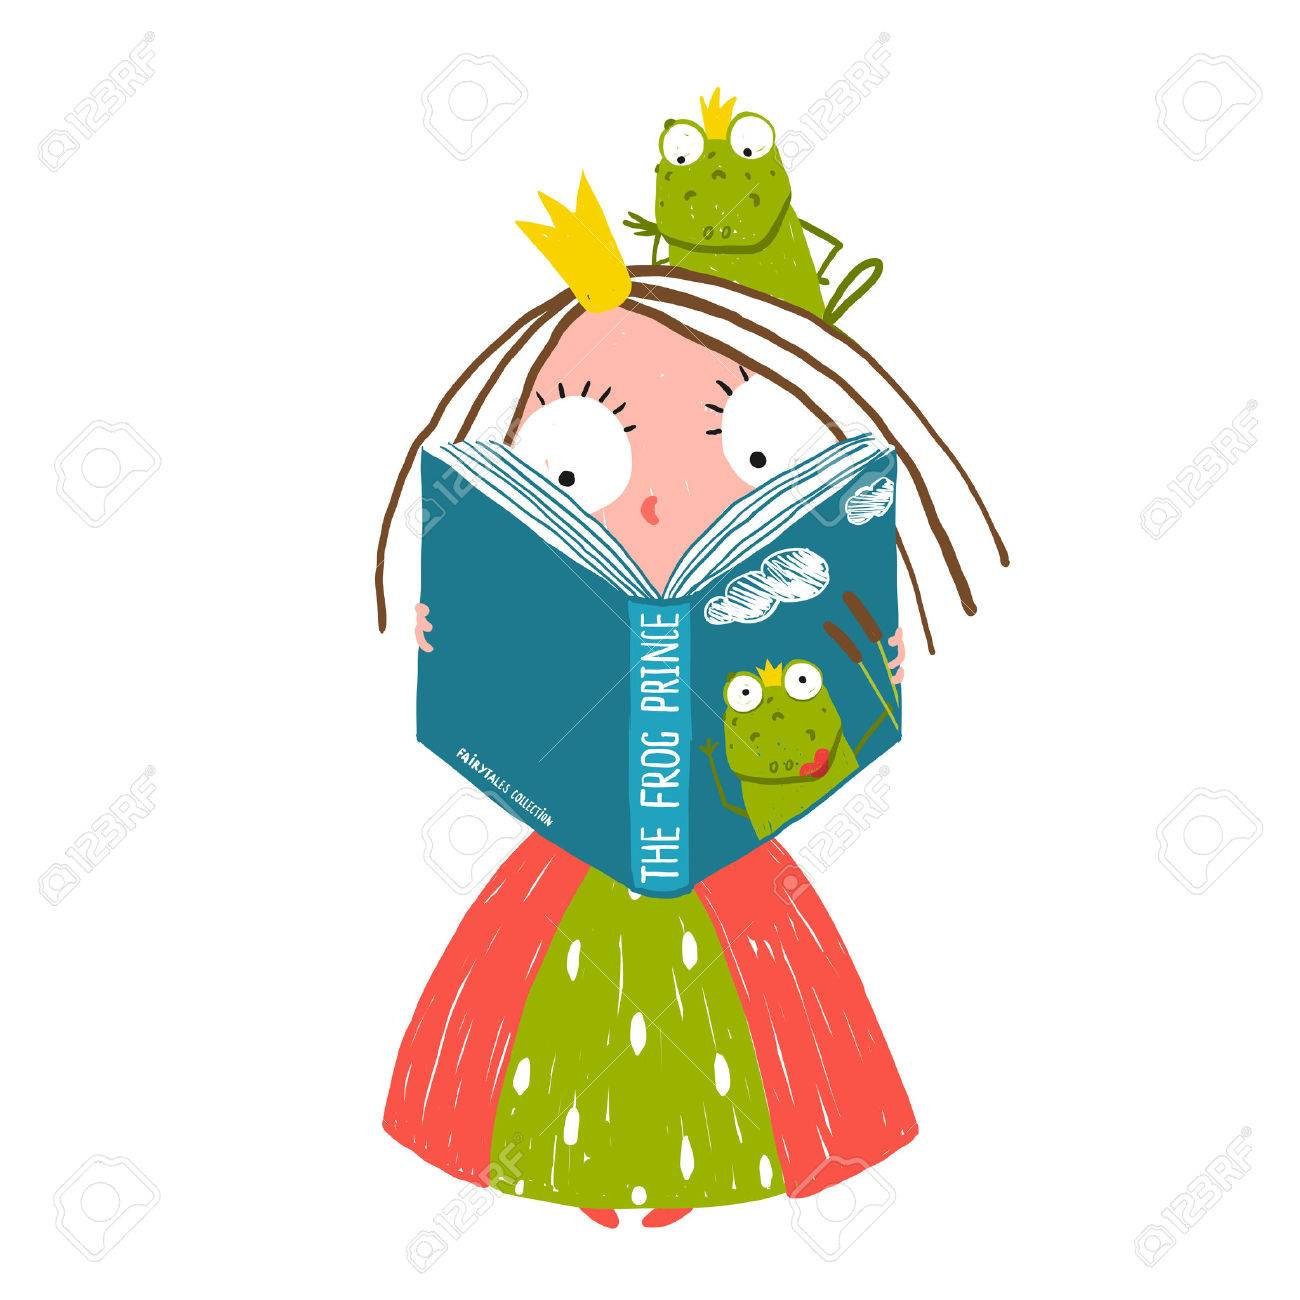 Clever Little Princess Reading Fairy Tale with Prince Frog Sitting on Head - 41161186